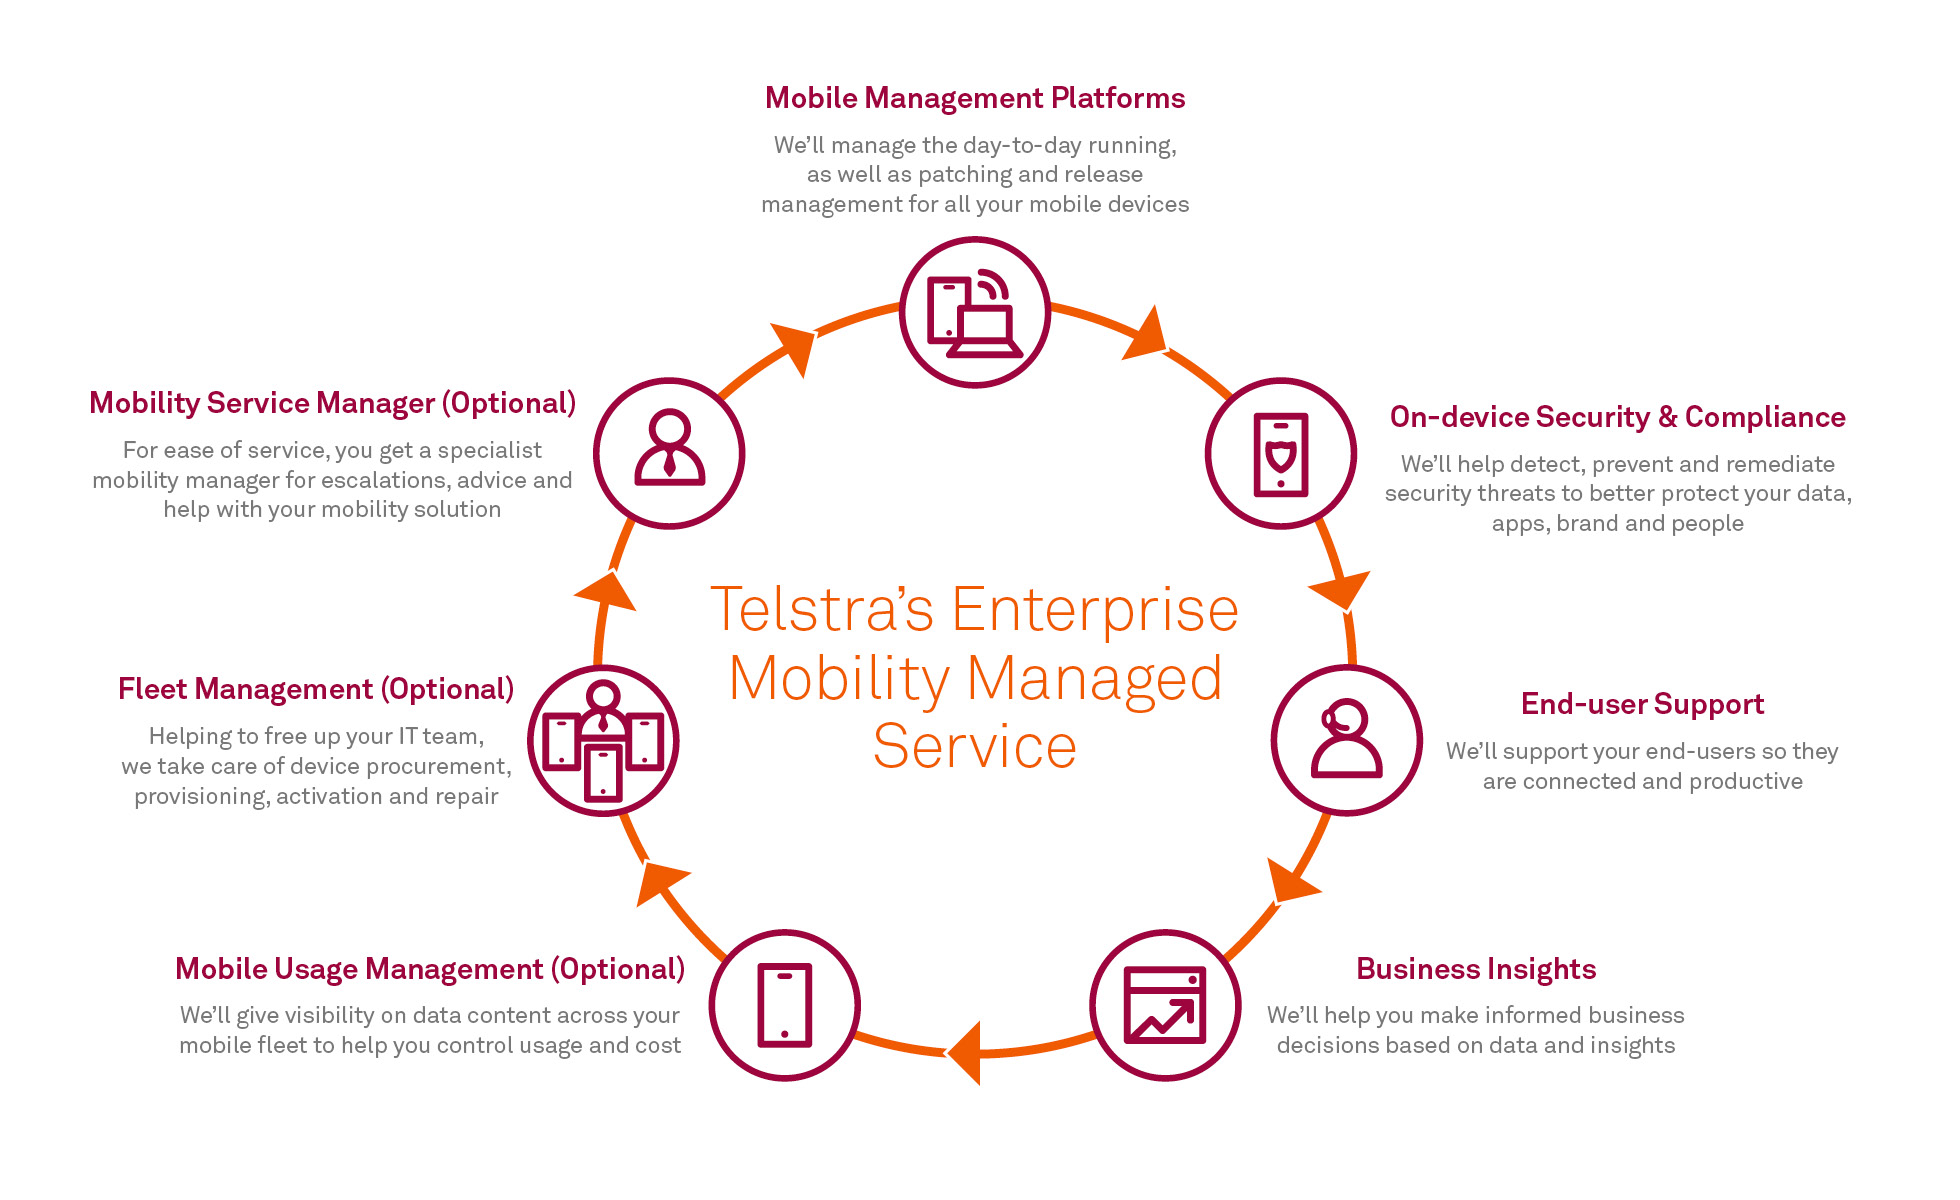 Telstra's enterprise mobility managed service